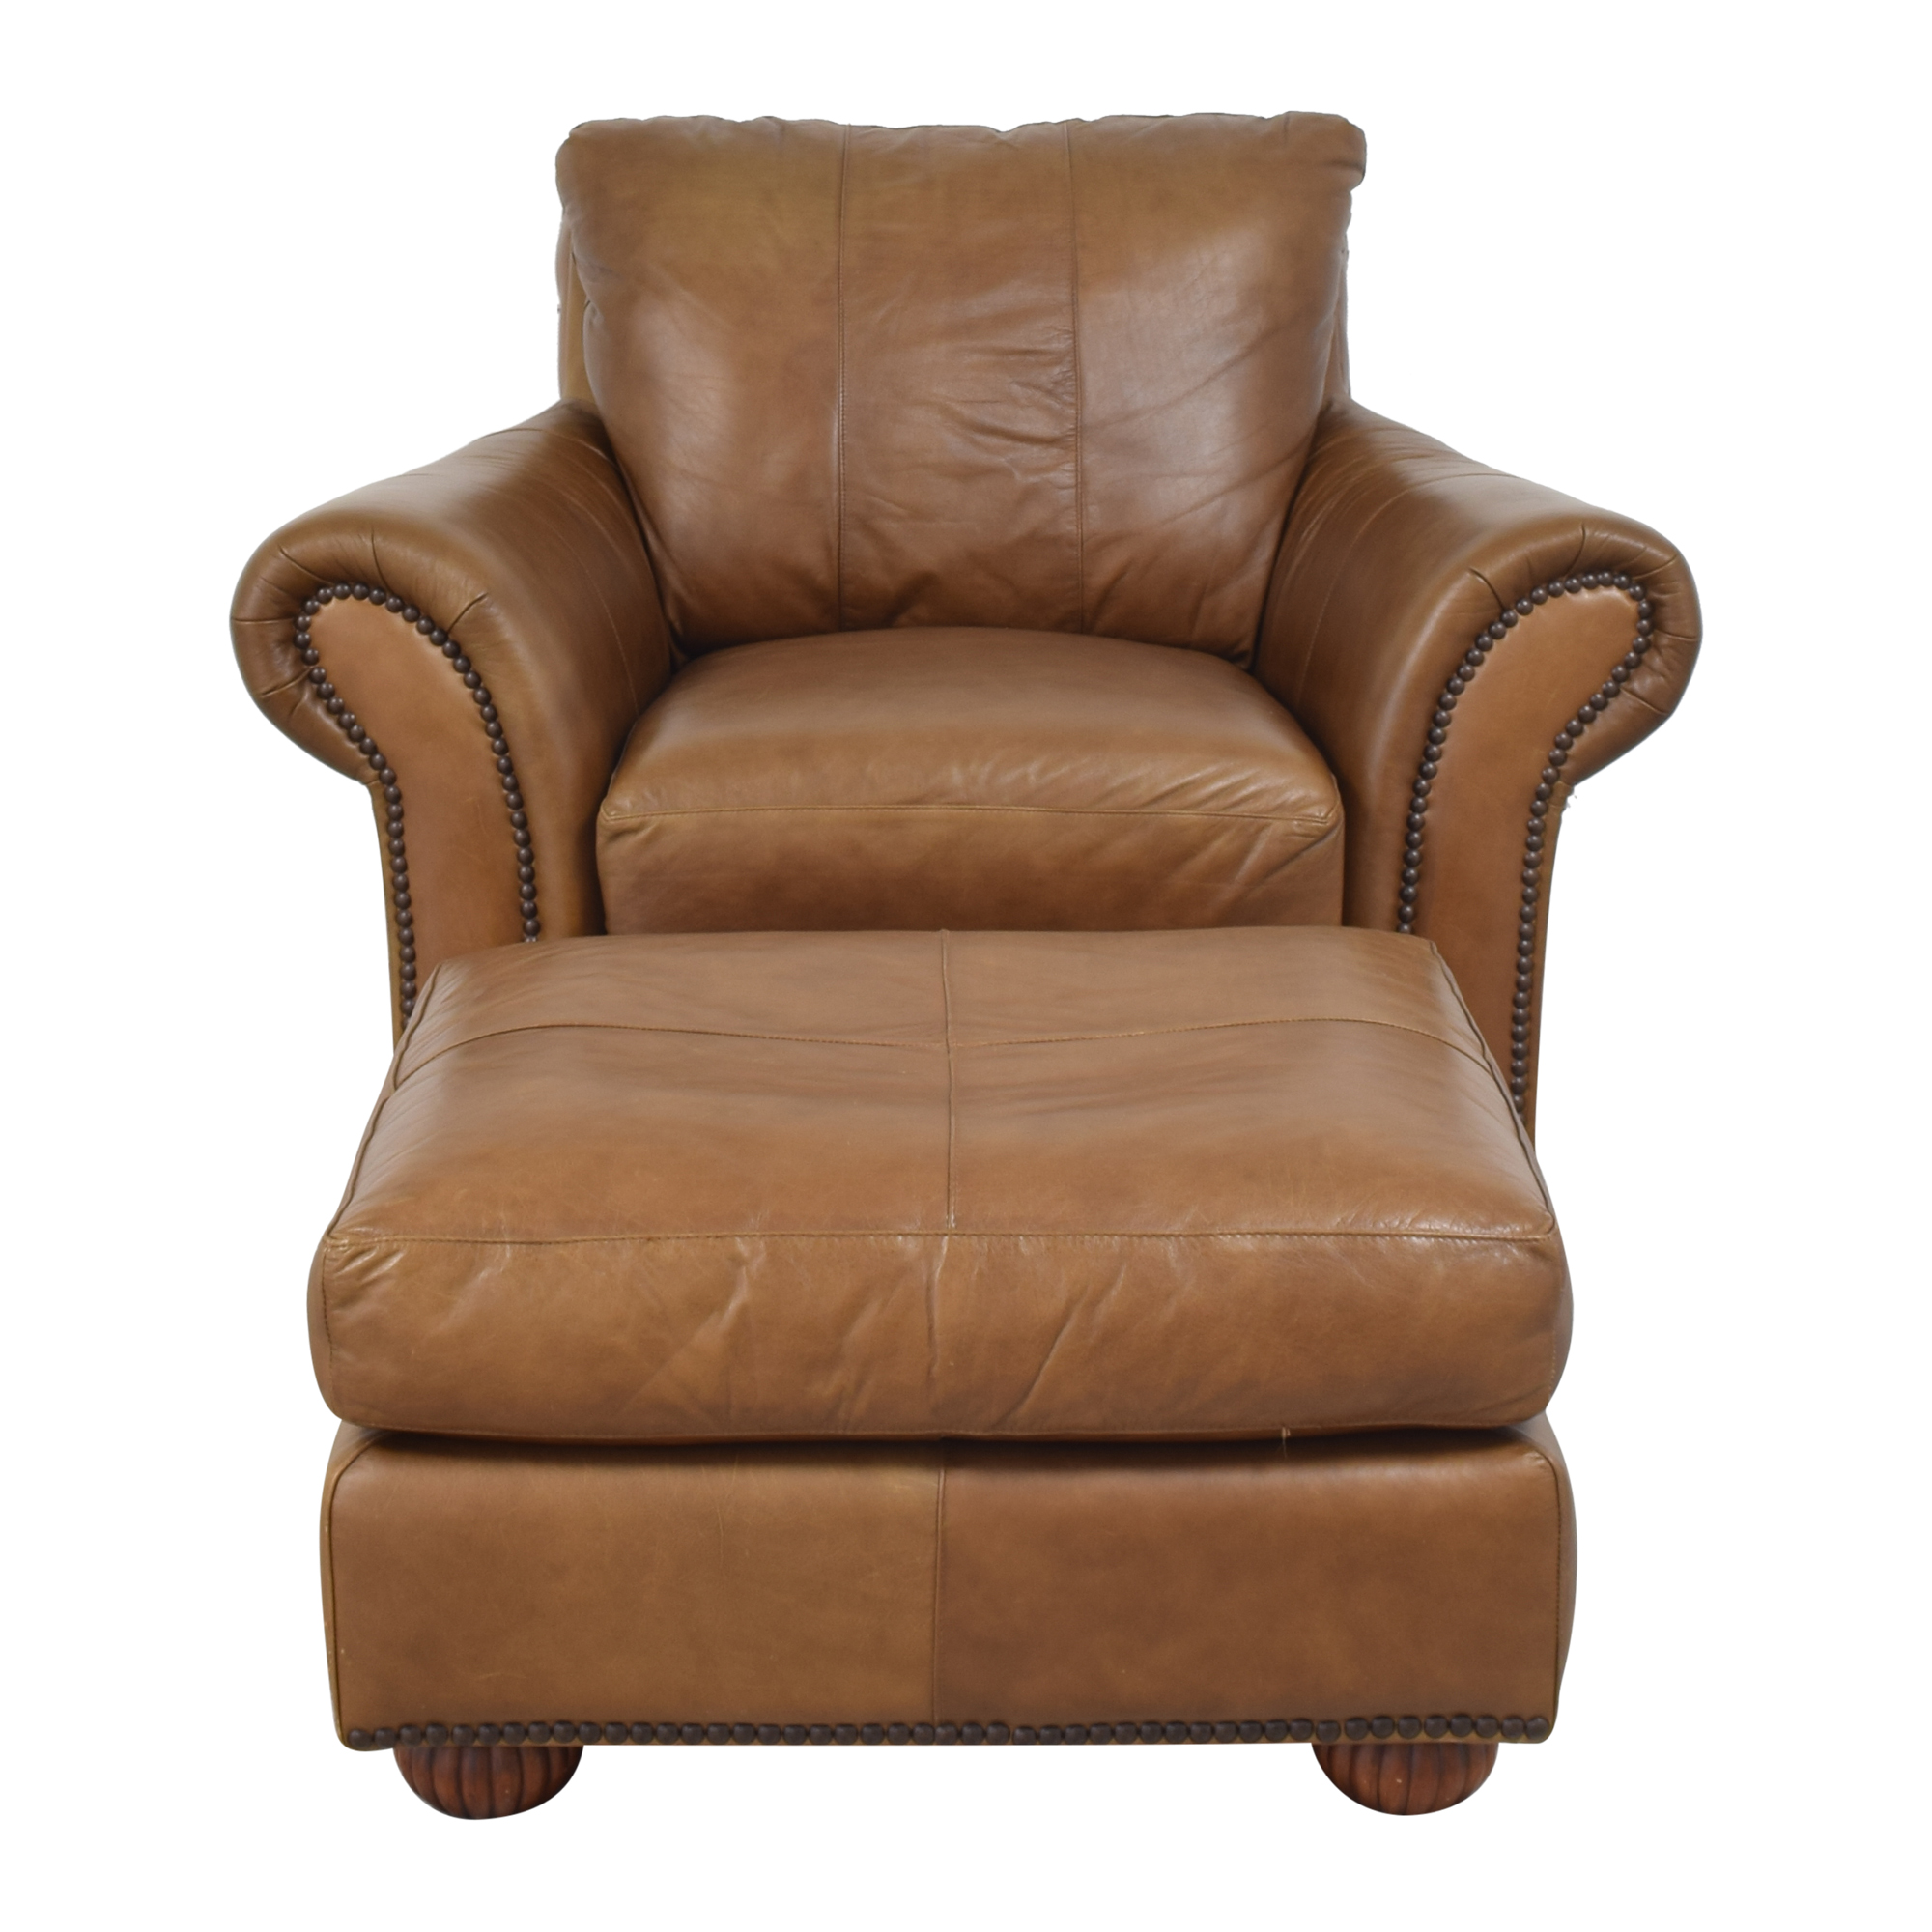 Raymour & Flanigan Raymour & Flanigan Nailhead Club Chair with Ottoman pa